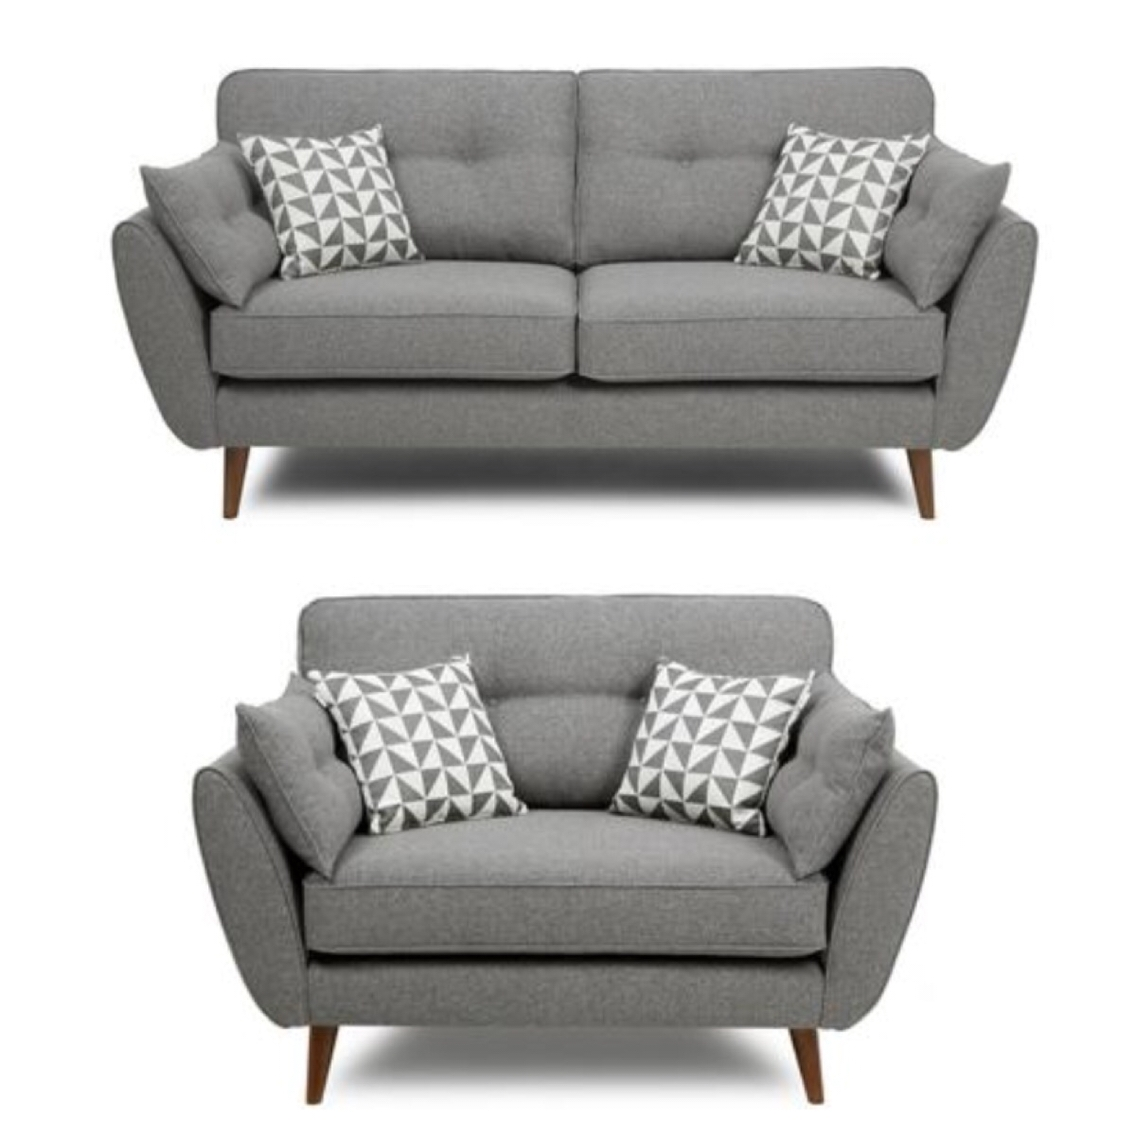 French Connection Grey Sofa And Cuddle Chair Pinteres Within Grey Sofa Chairs (Image 4 of 15)